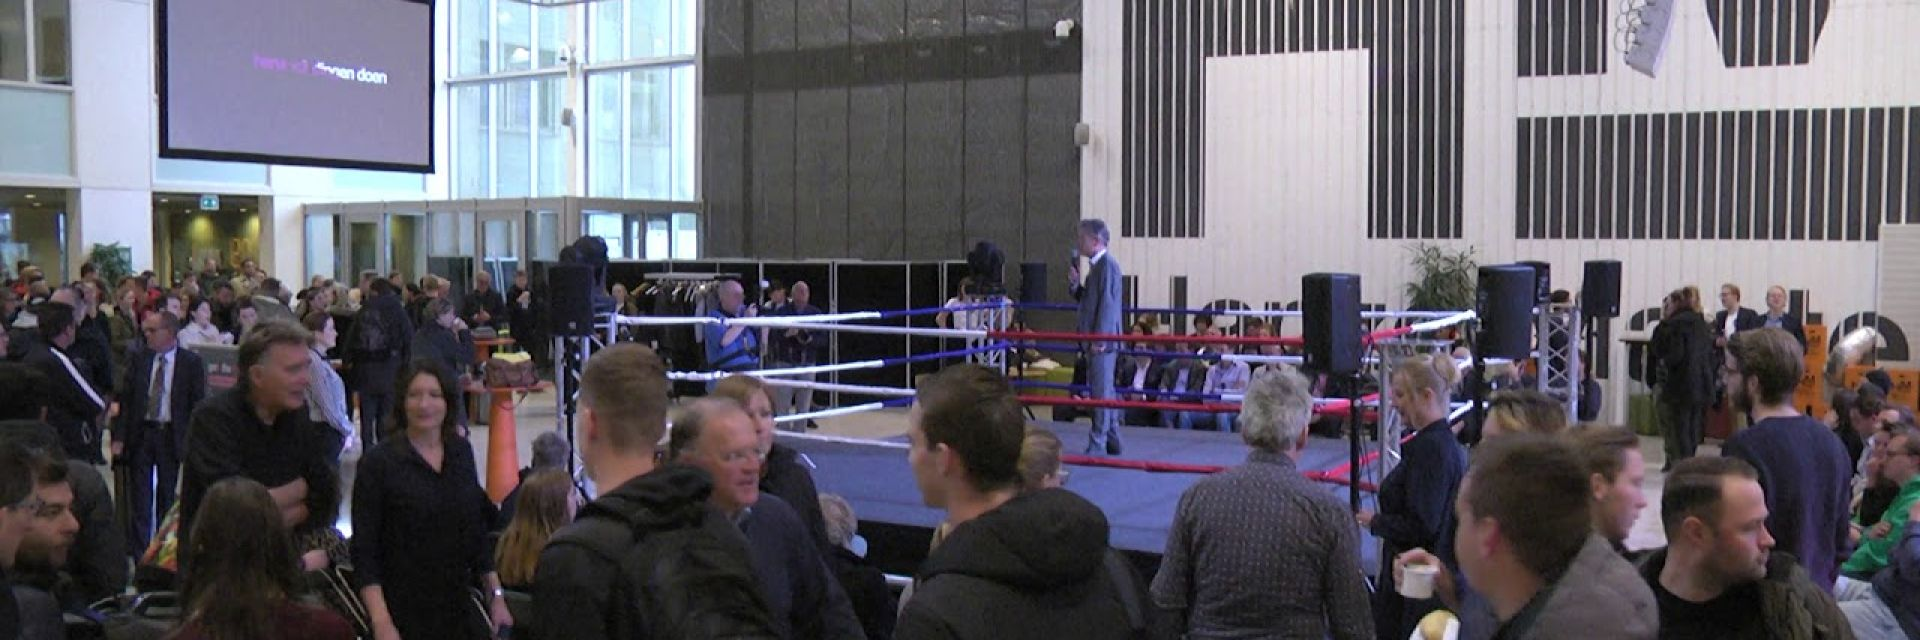 Get In The Ring - Politiek debat